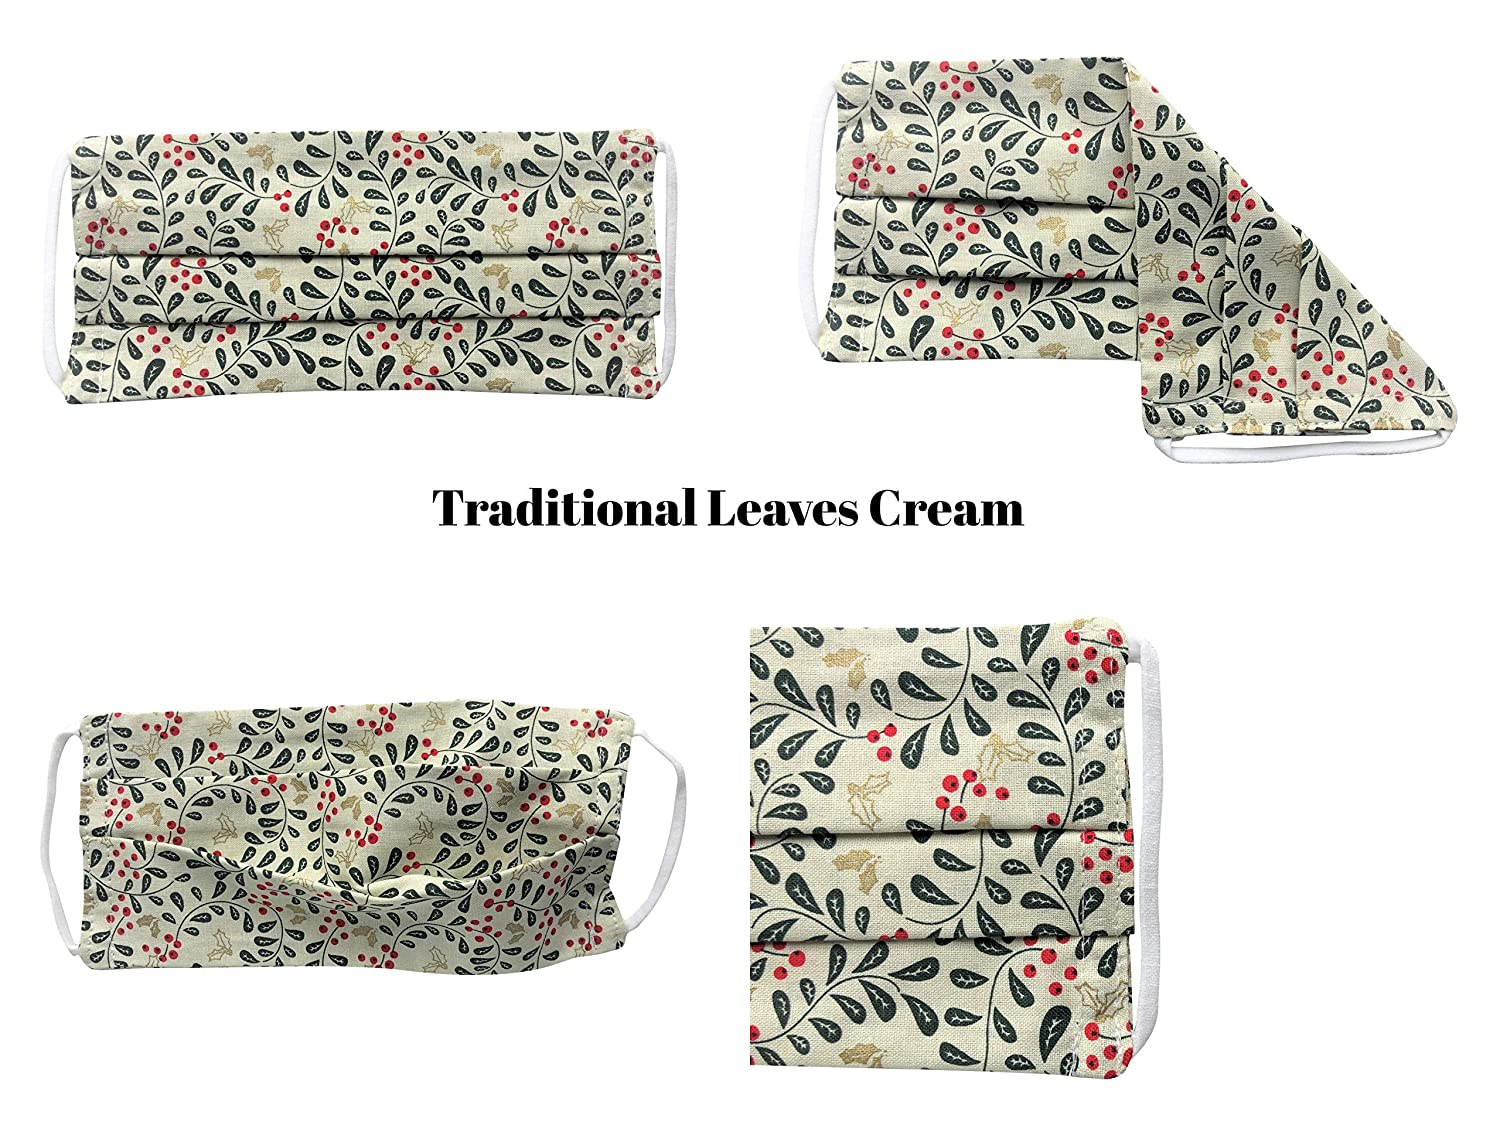 Reusable Traditional Leaves Cream Pleated Cotton Face Mask